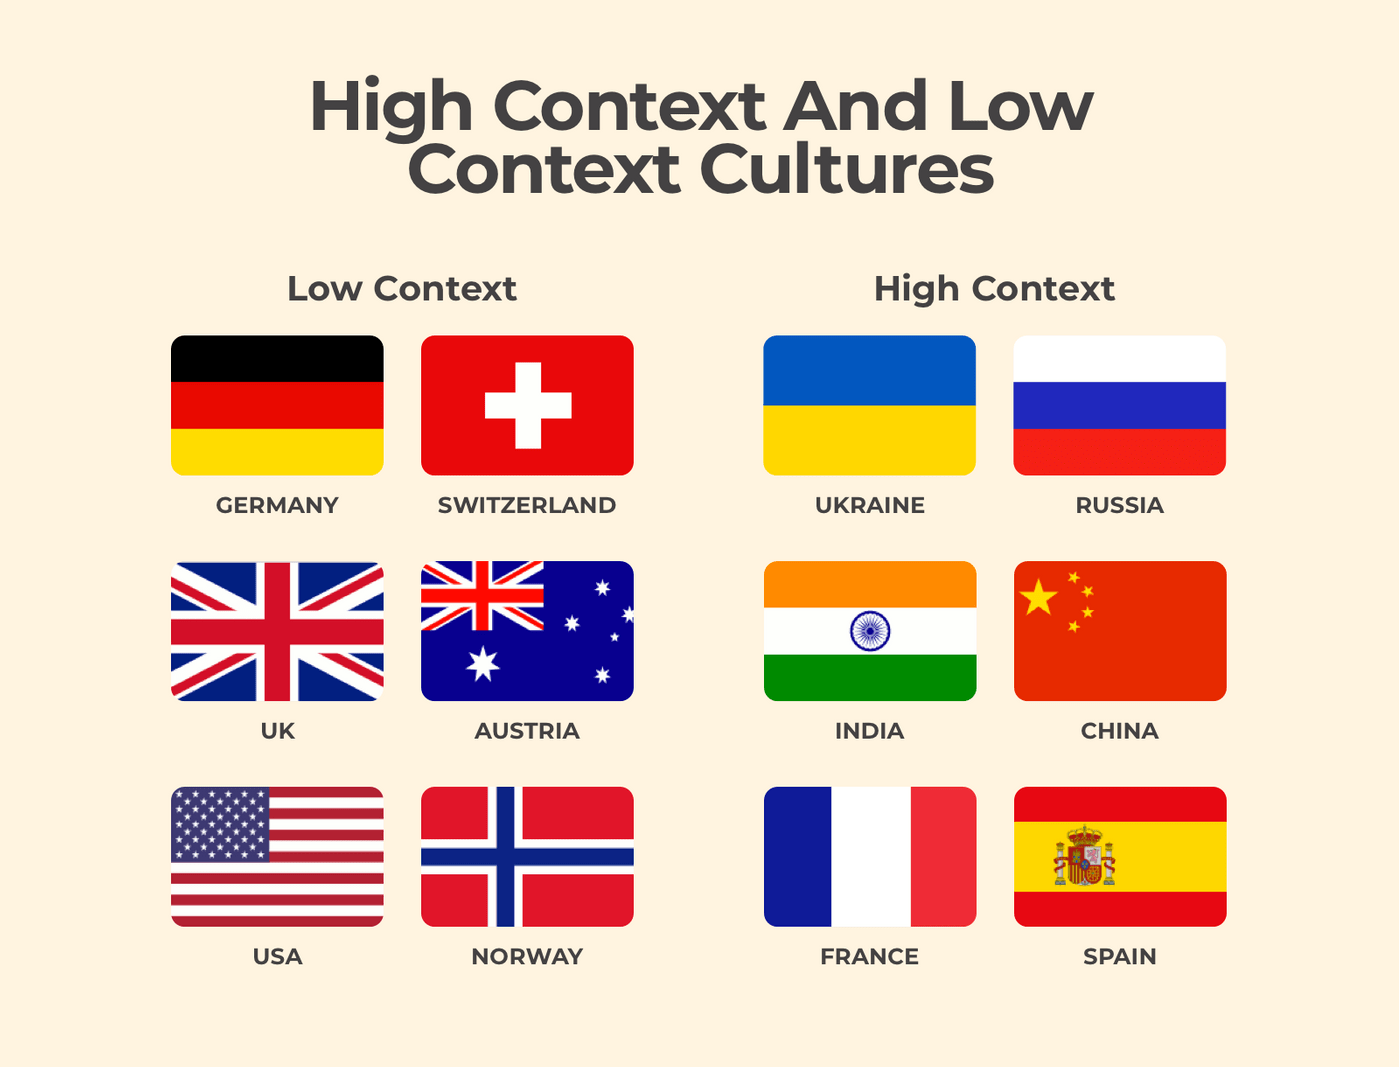 Countries and their culture types.